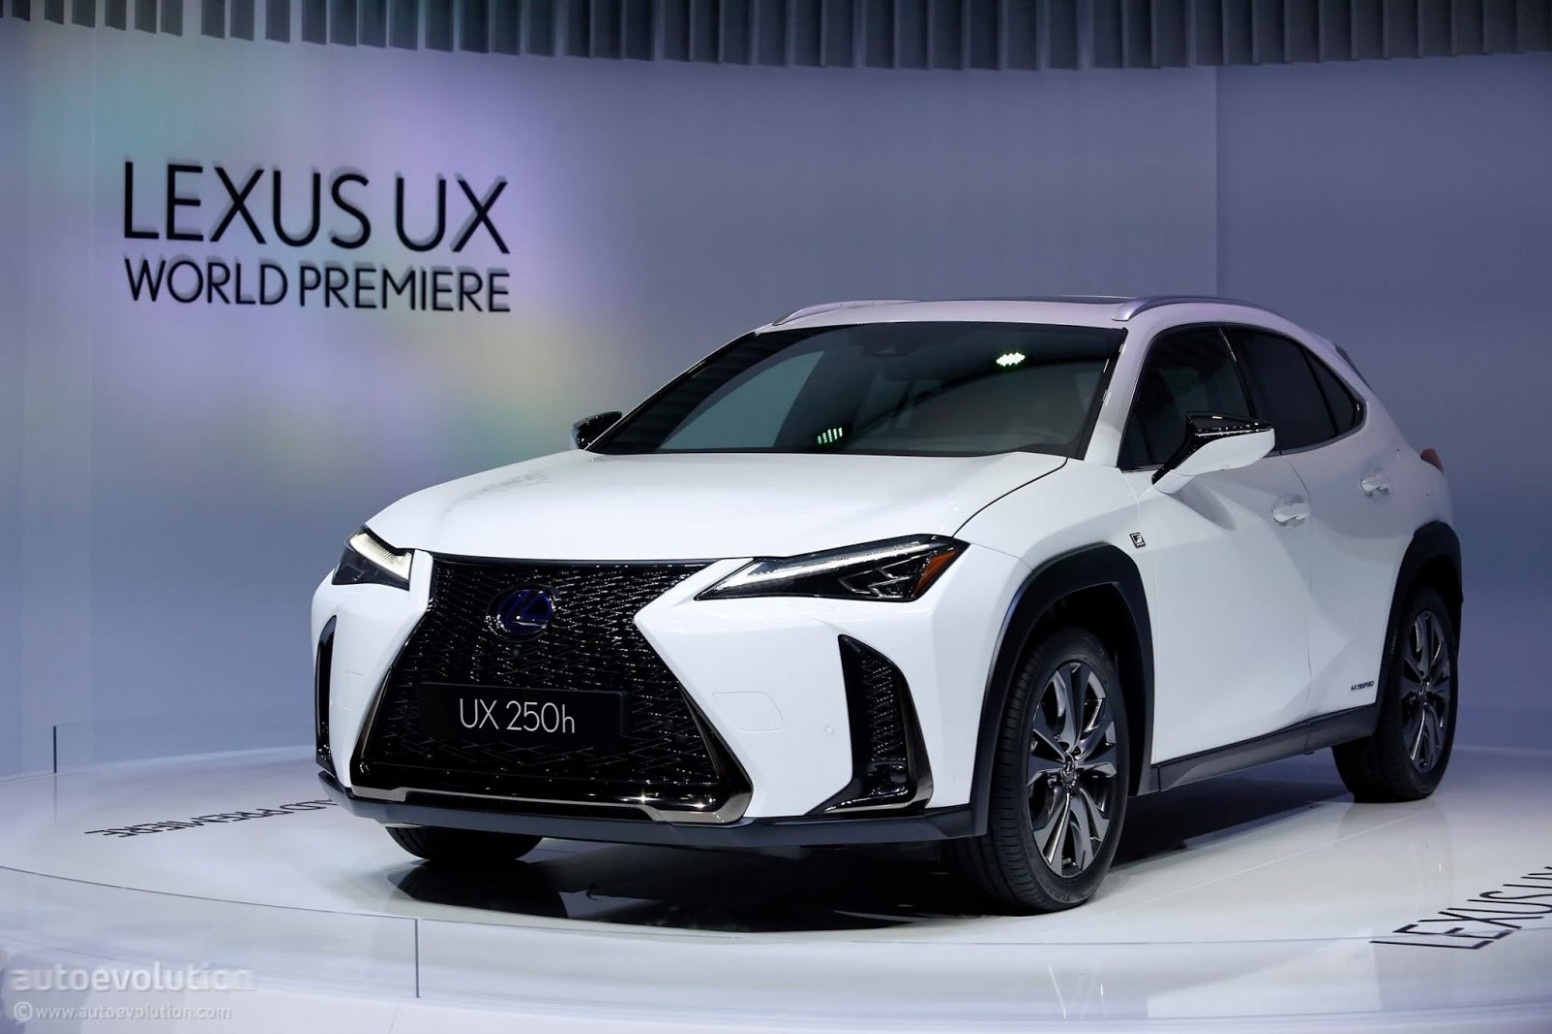 Carshighlight.com: 7 Lexus UX F Review, Specs, Price